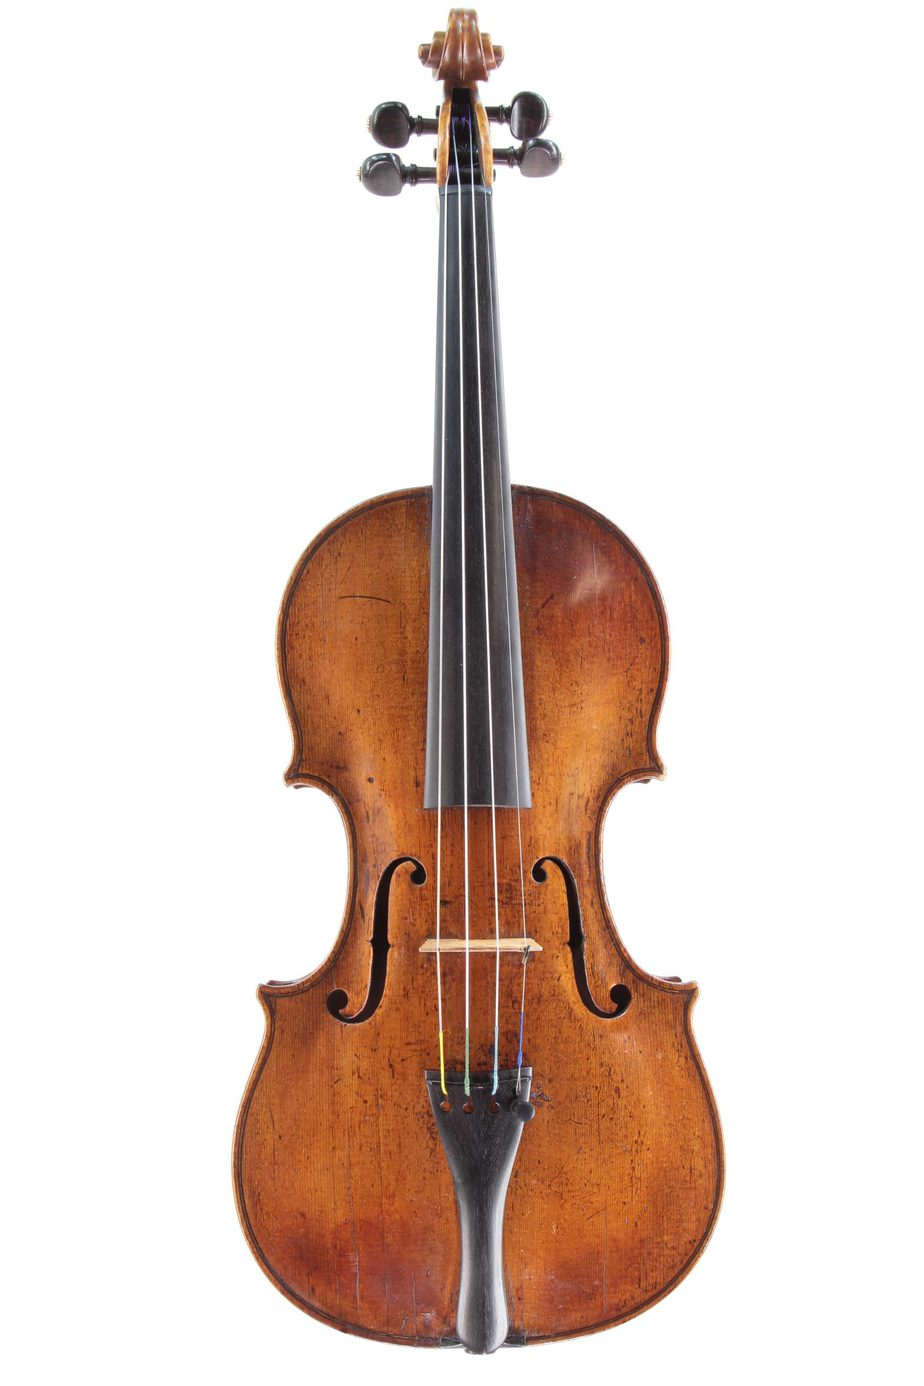 Jacob Stainer Violin